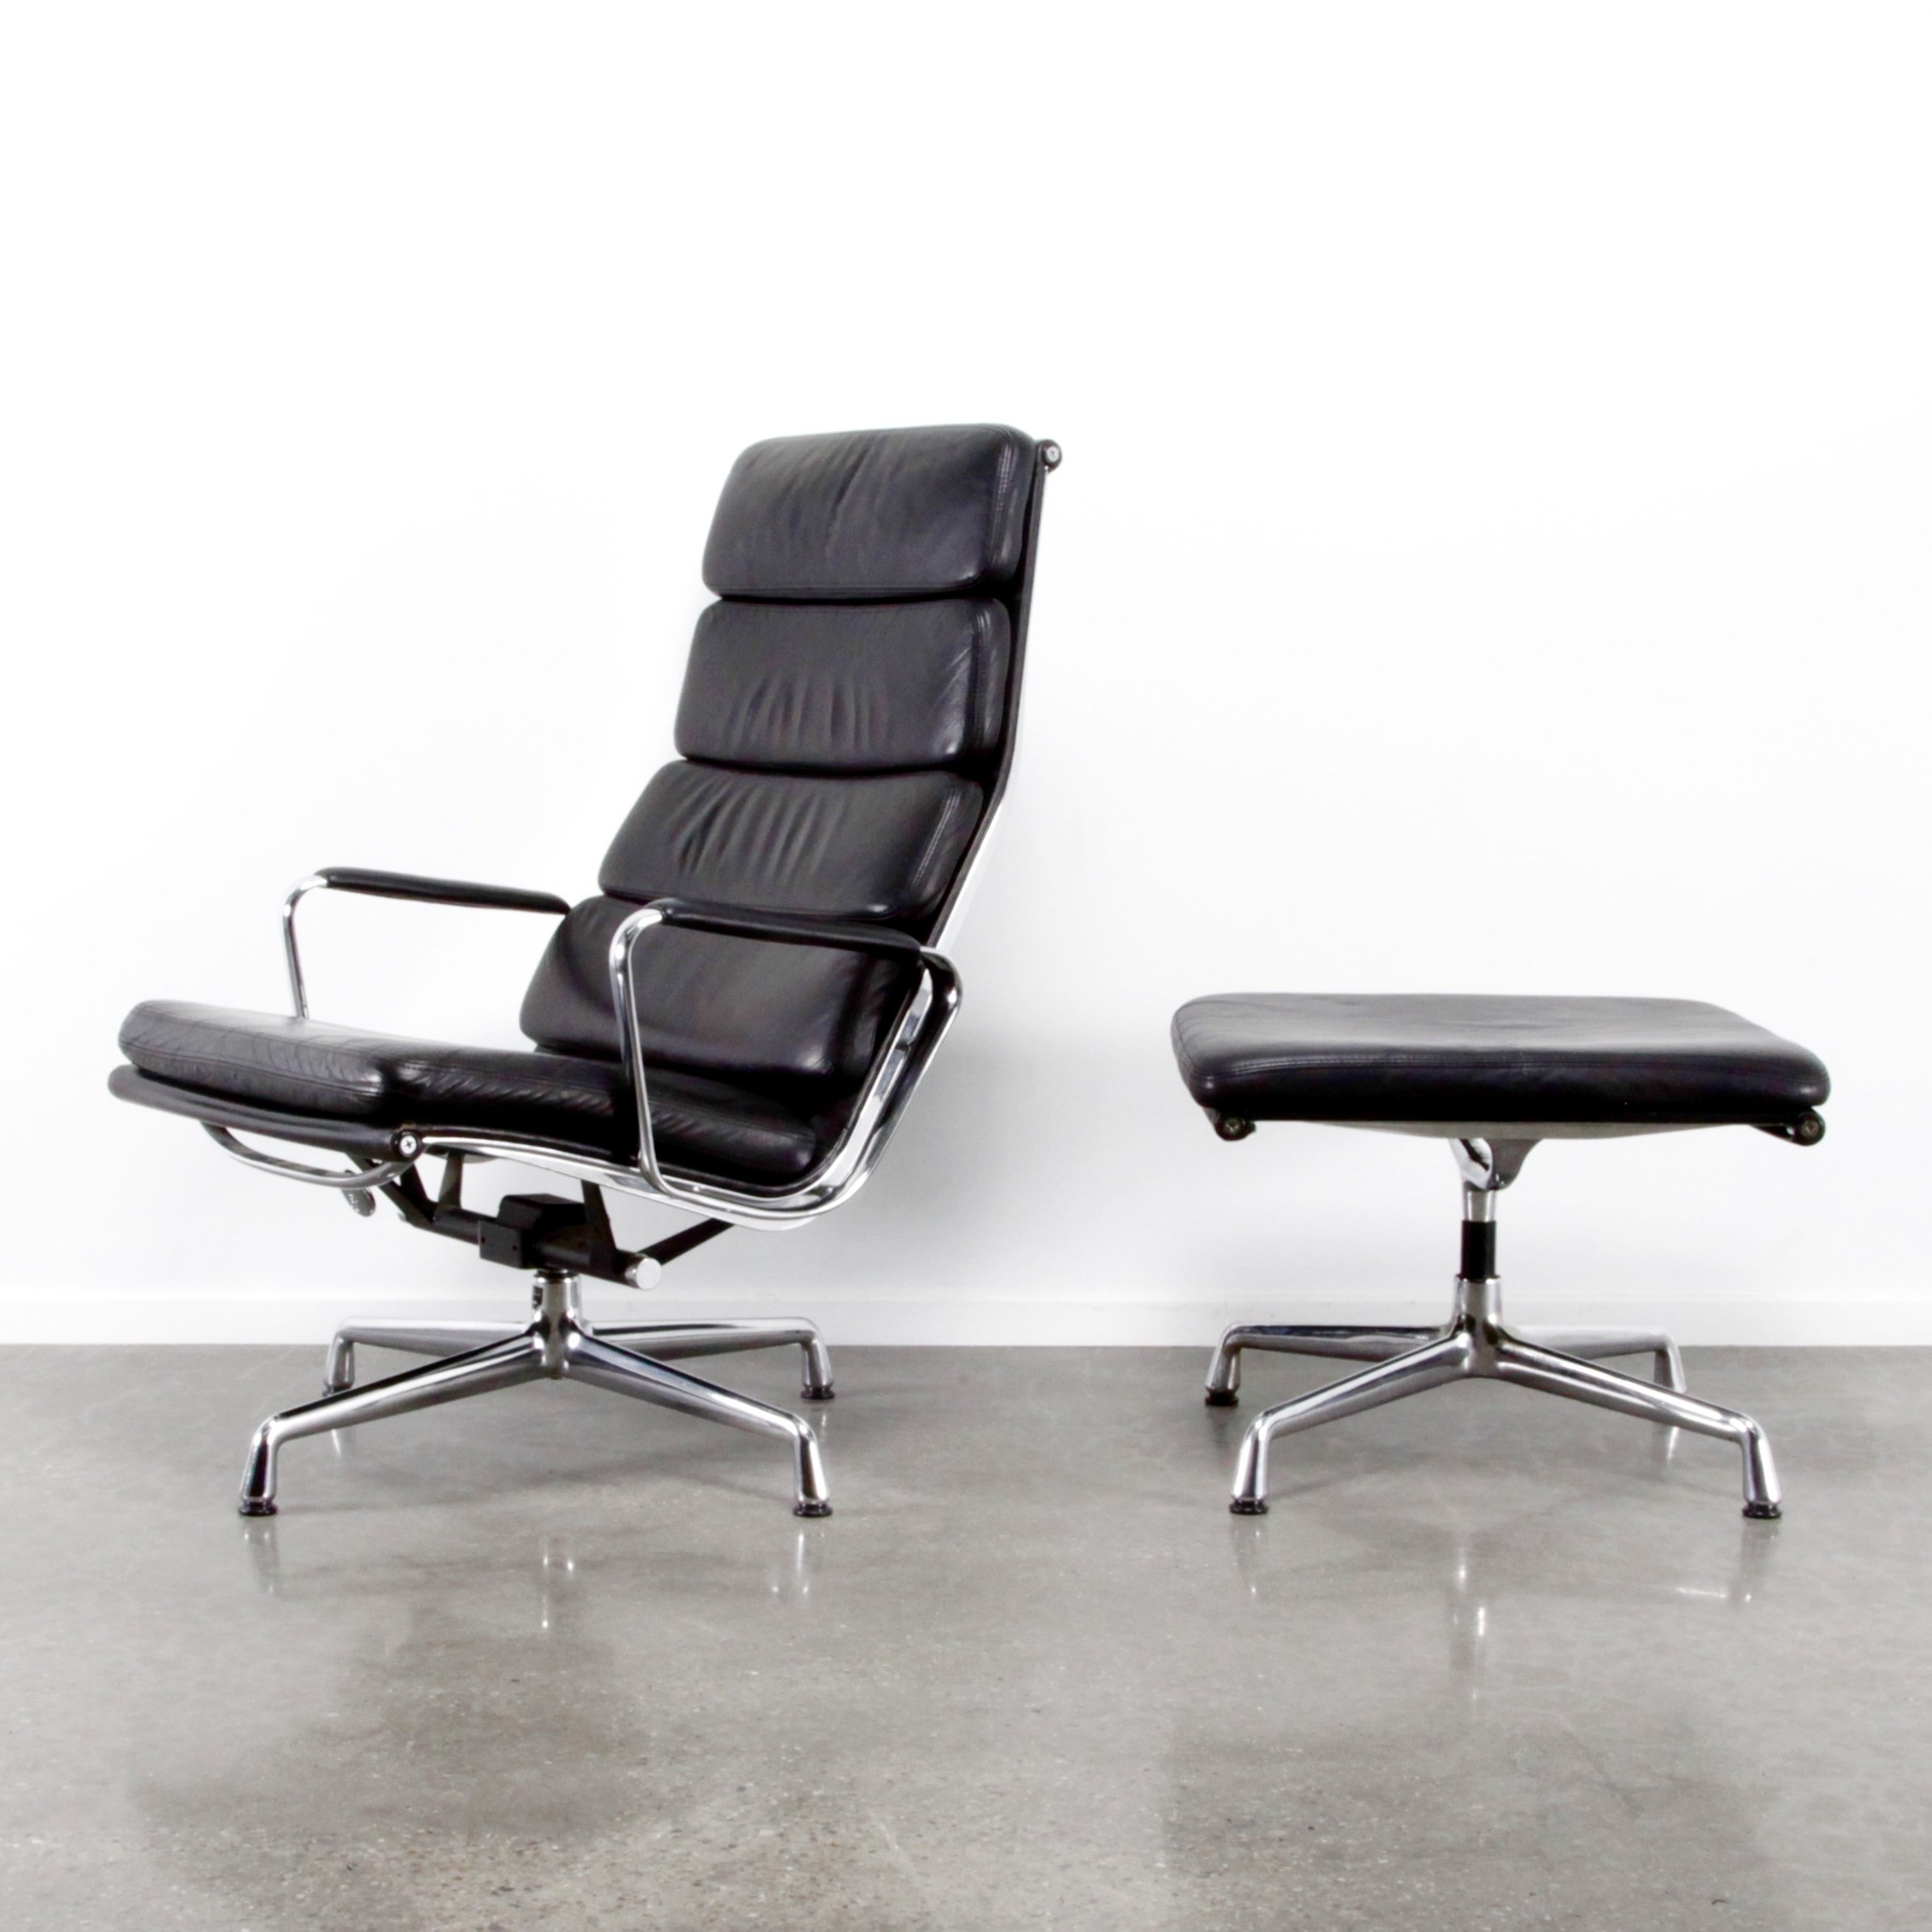 eames soft pad lounge chair. EA222 +EA223 Softpad Lounge Chair By Charles \u0026 Ray Eames For Vitra, 1980s Soft Pad E